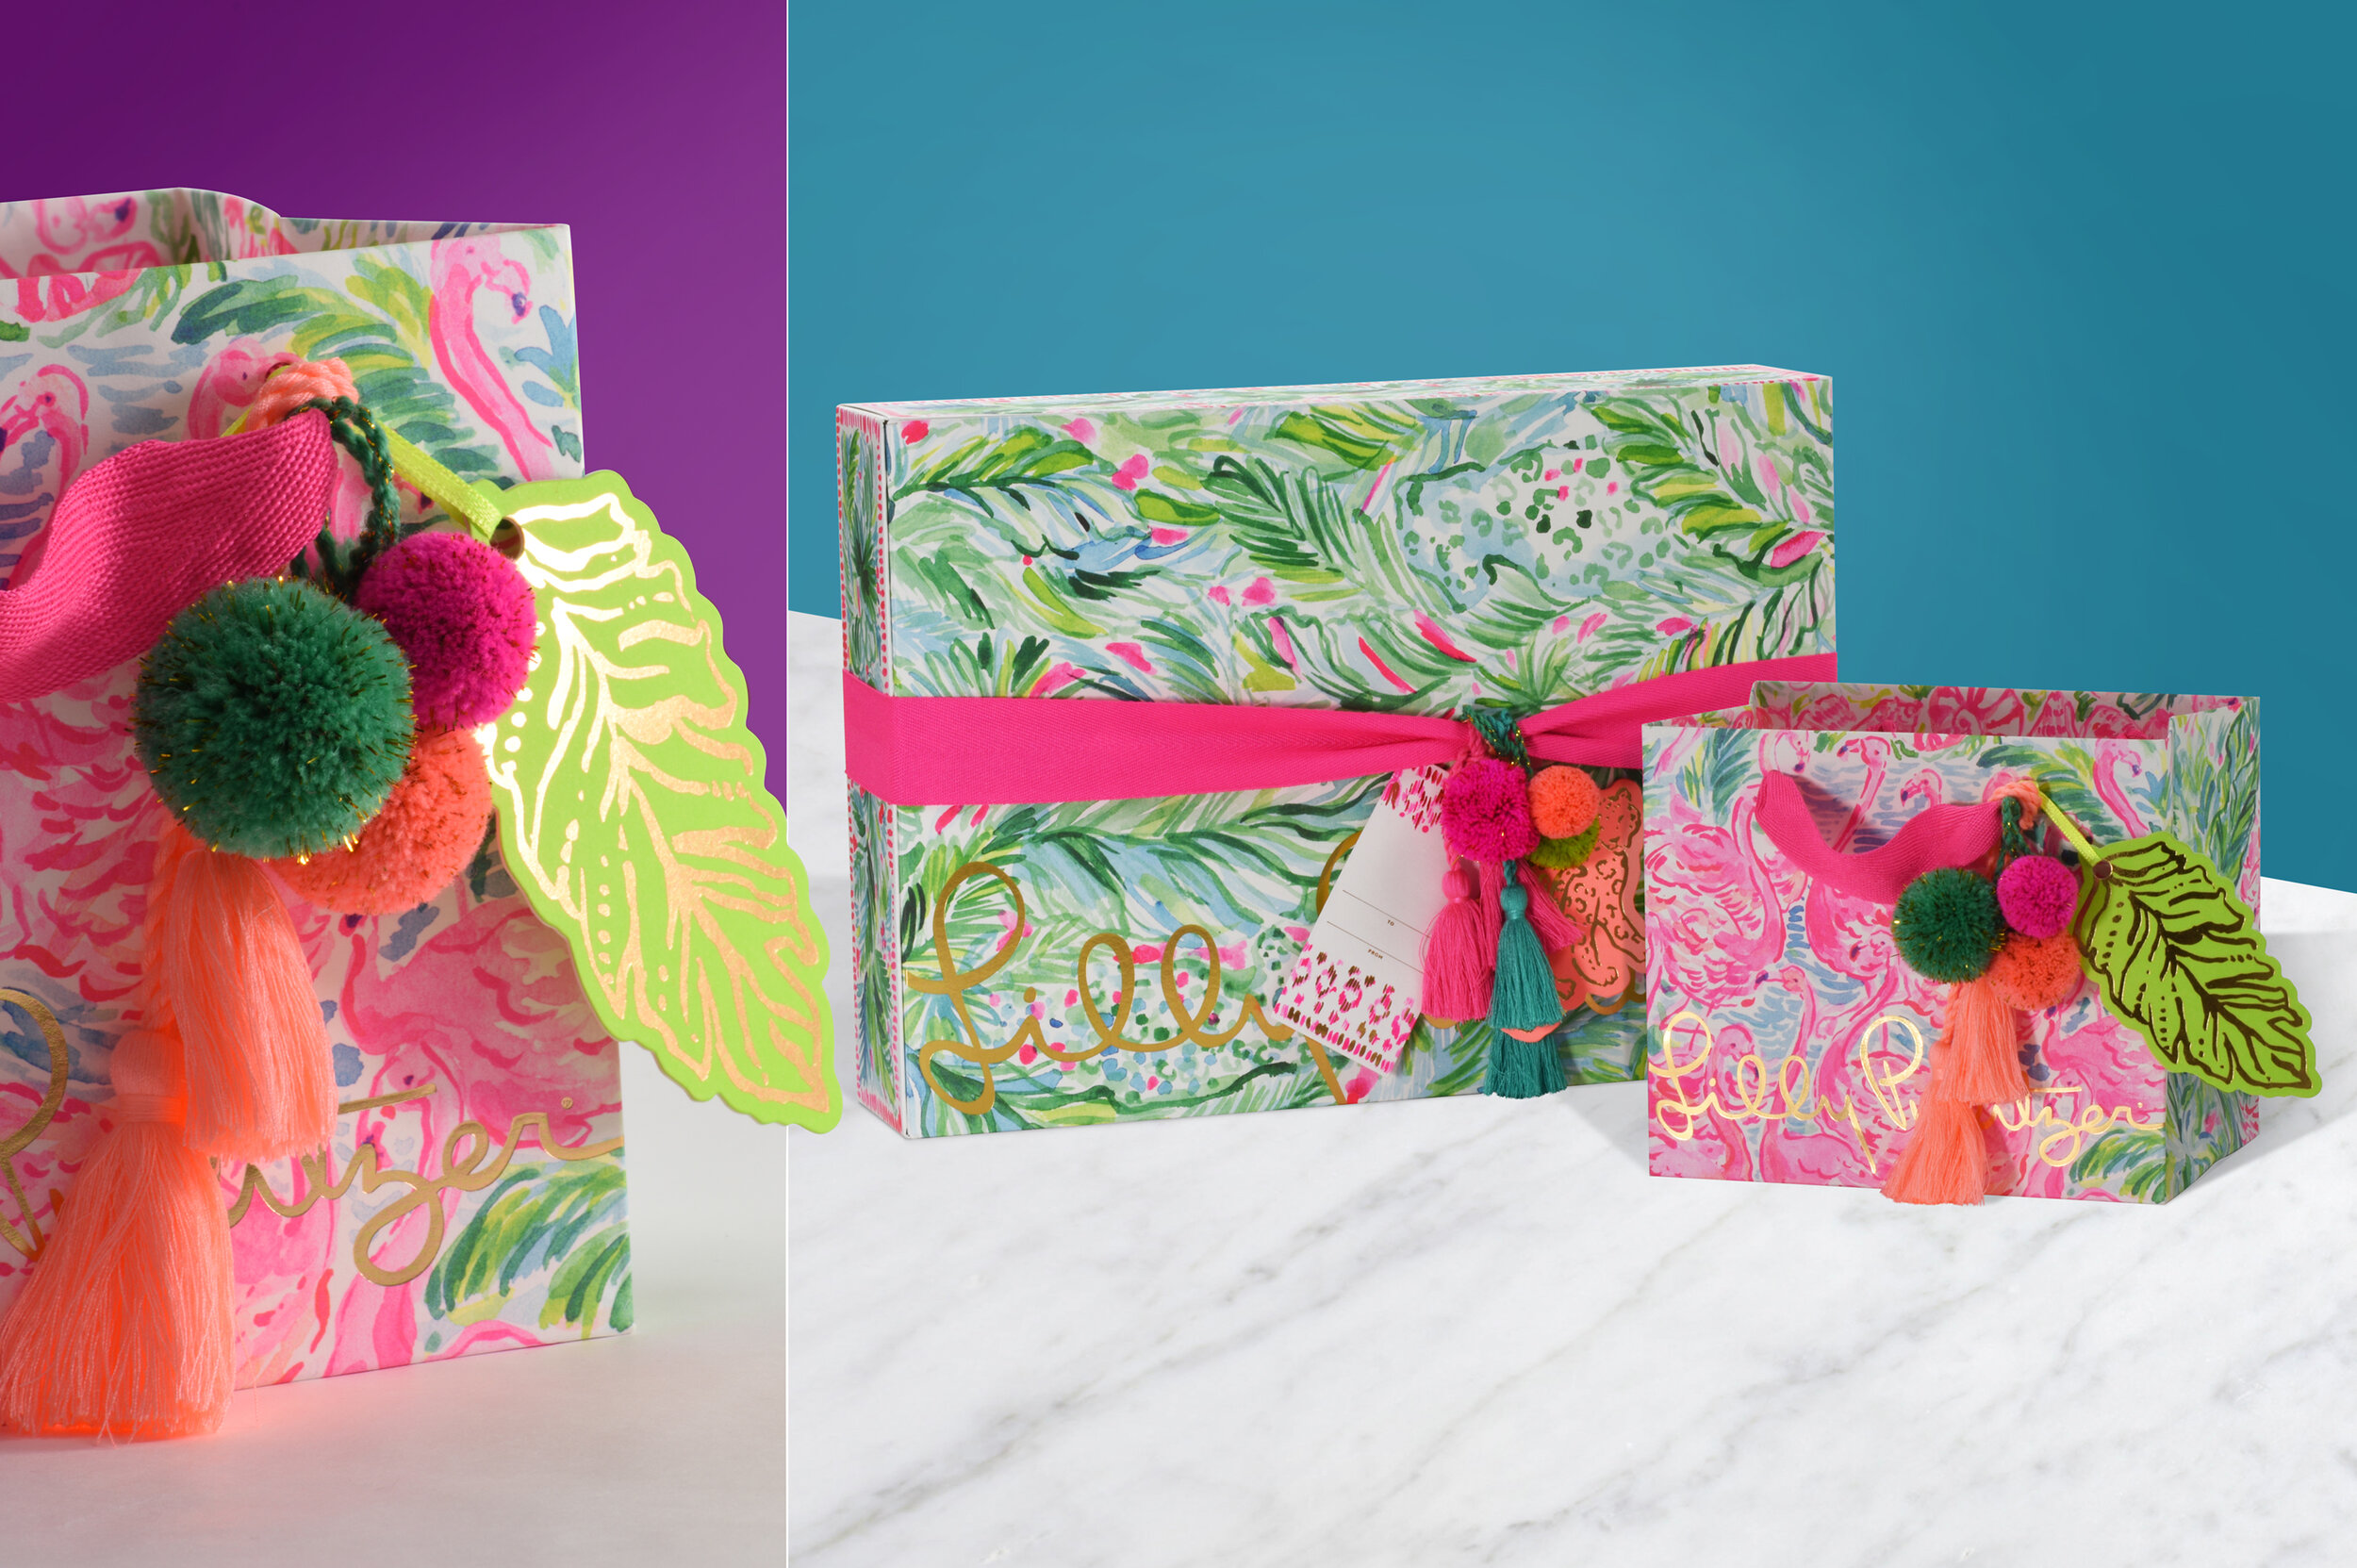 Lilly-Holiday-Packaging-Design.jpg